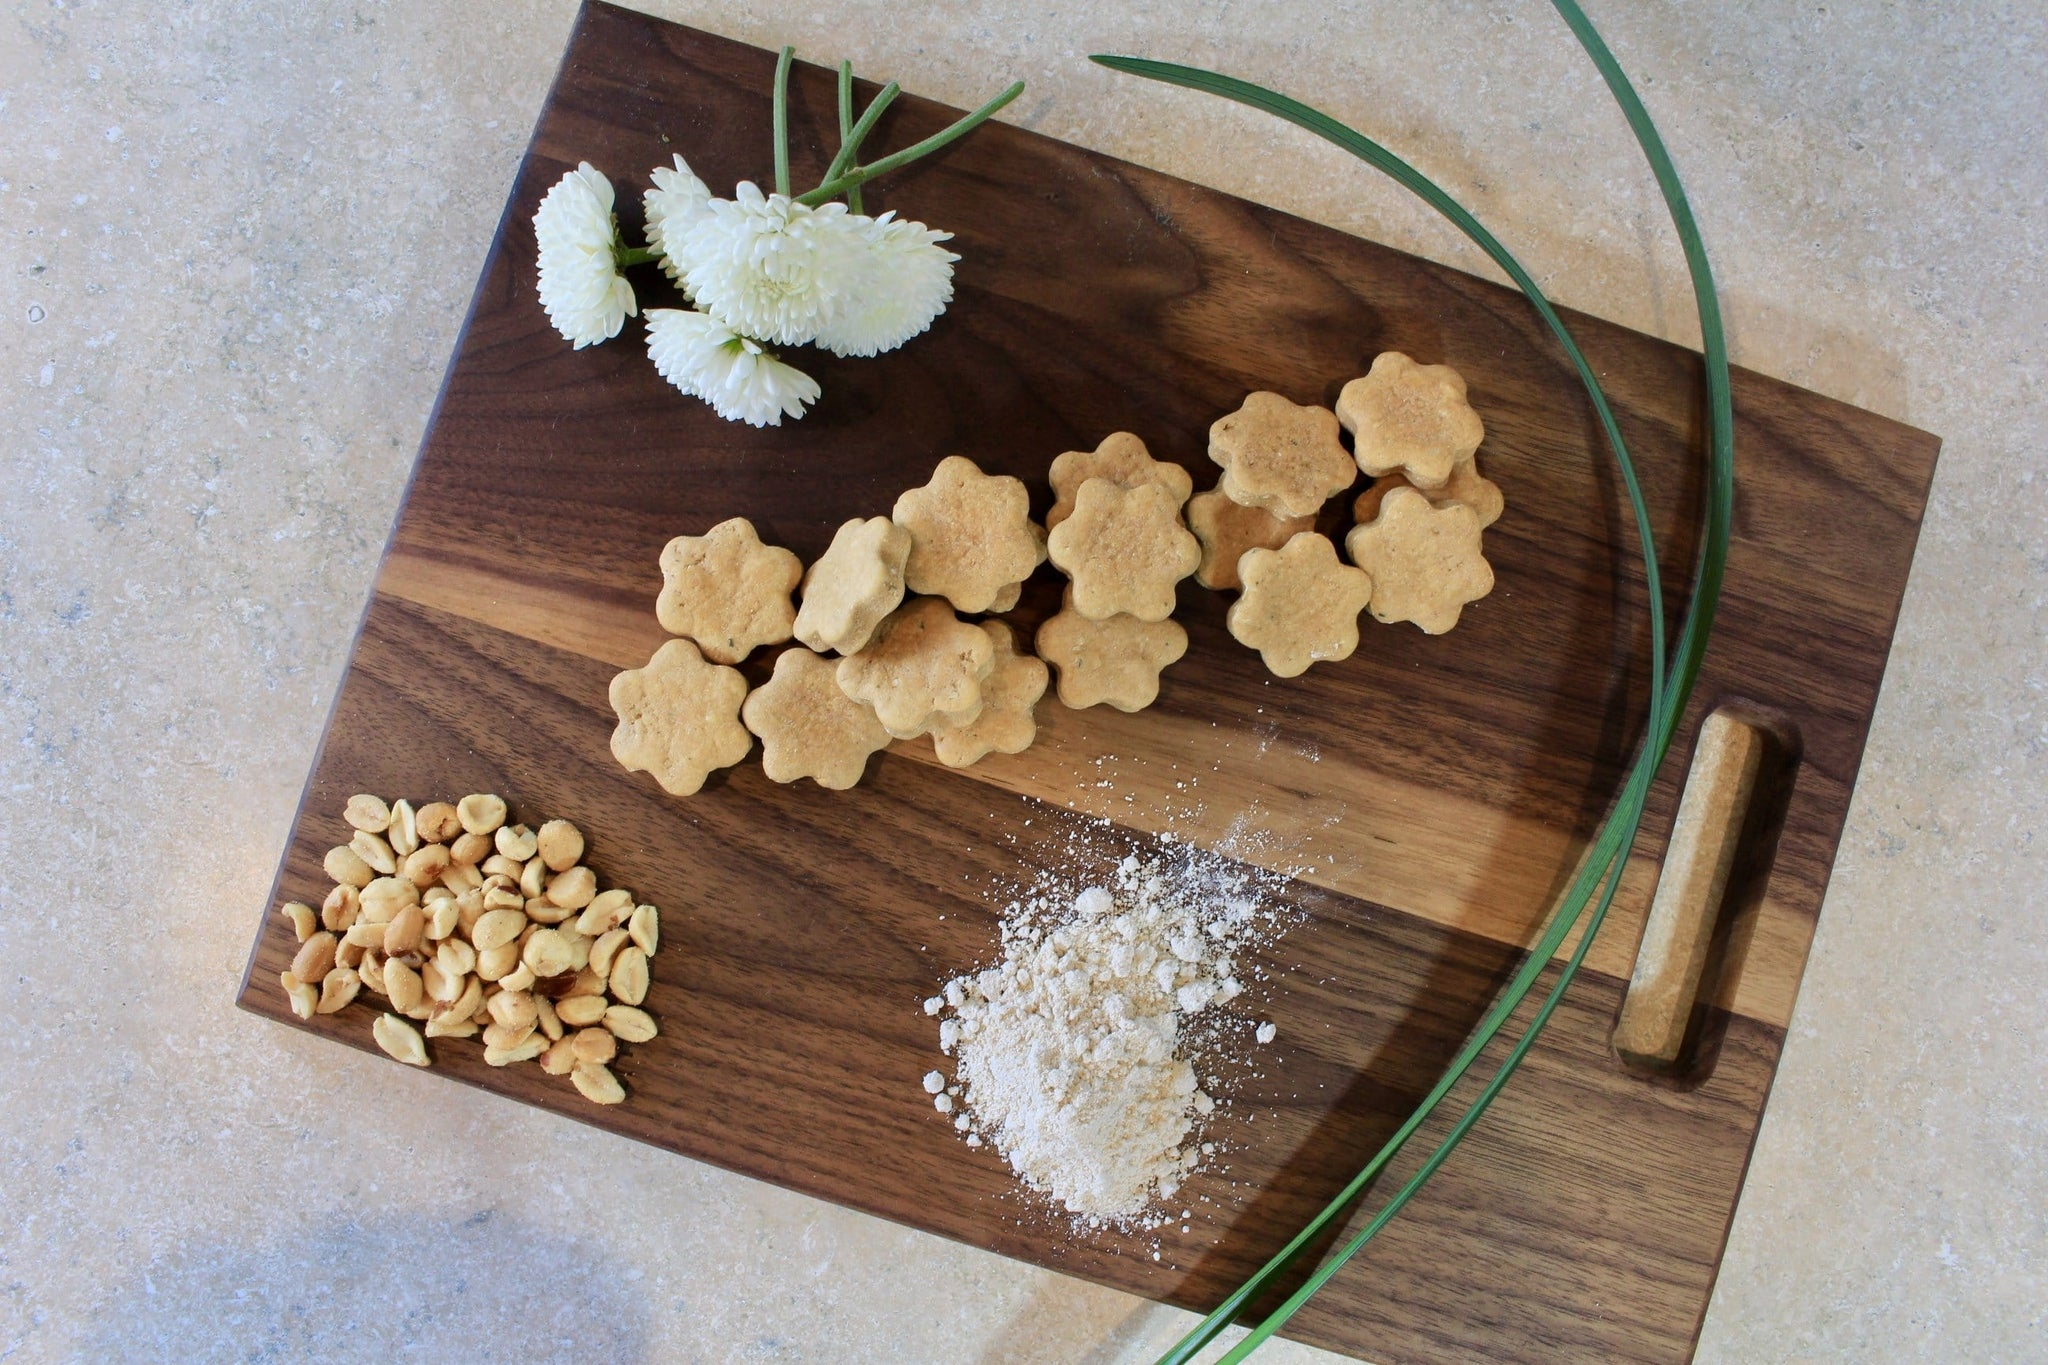 Handmade CBD treats peanut butter and all organic ingredients